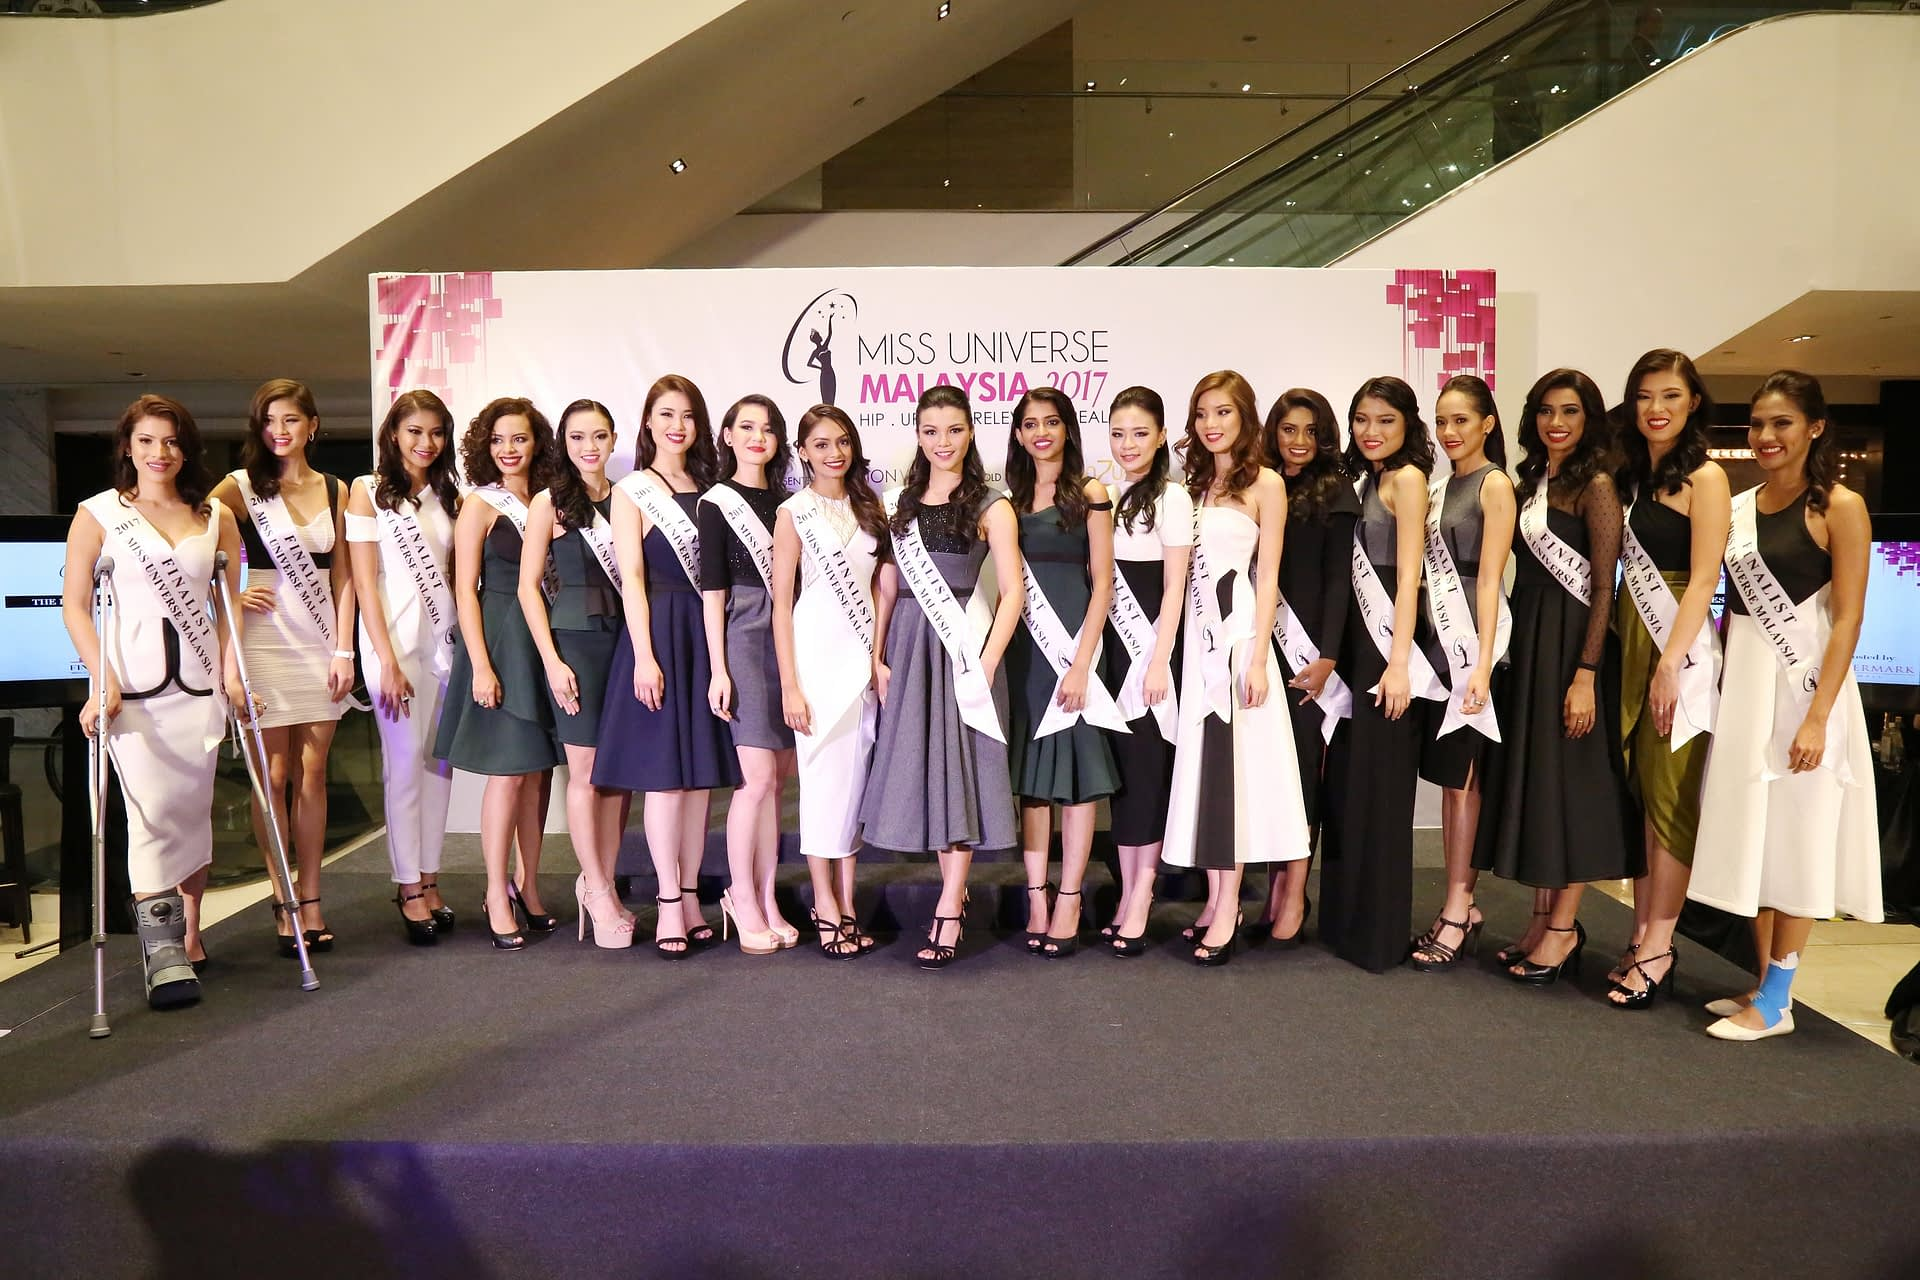 The Top 18 Finalist Of Miss Universe Malaysia 2017